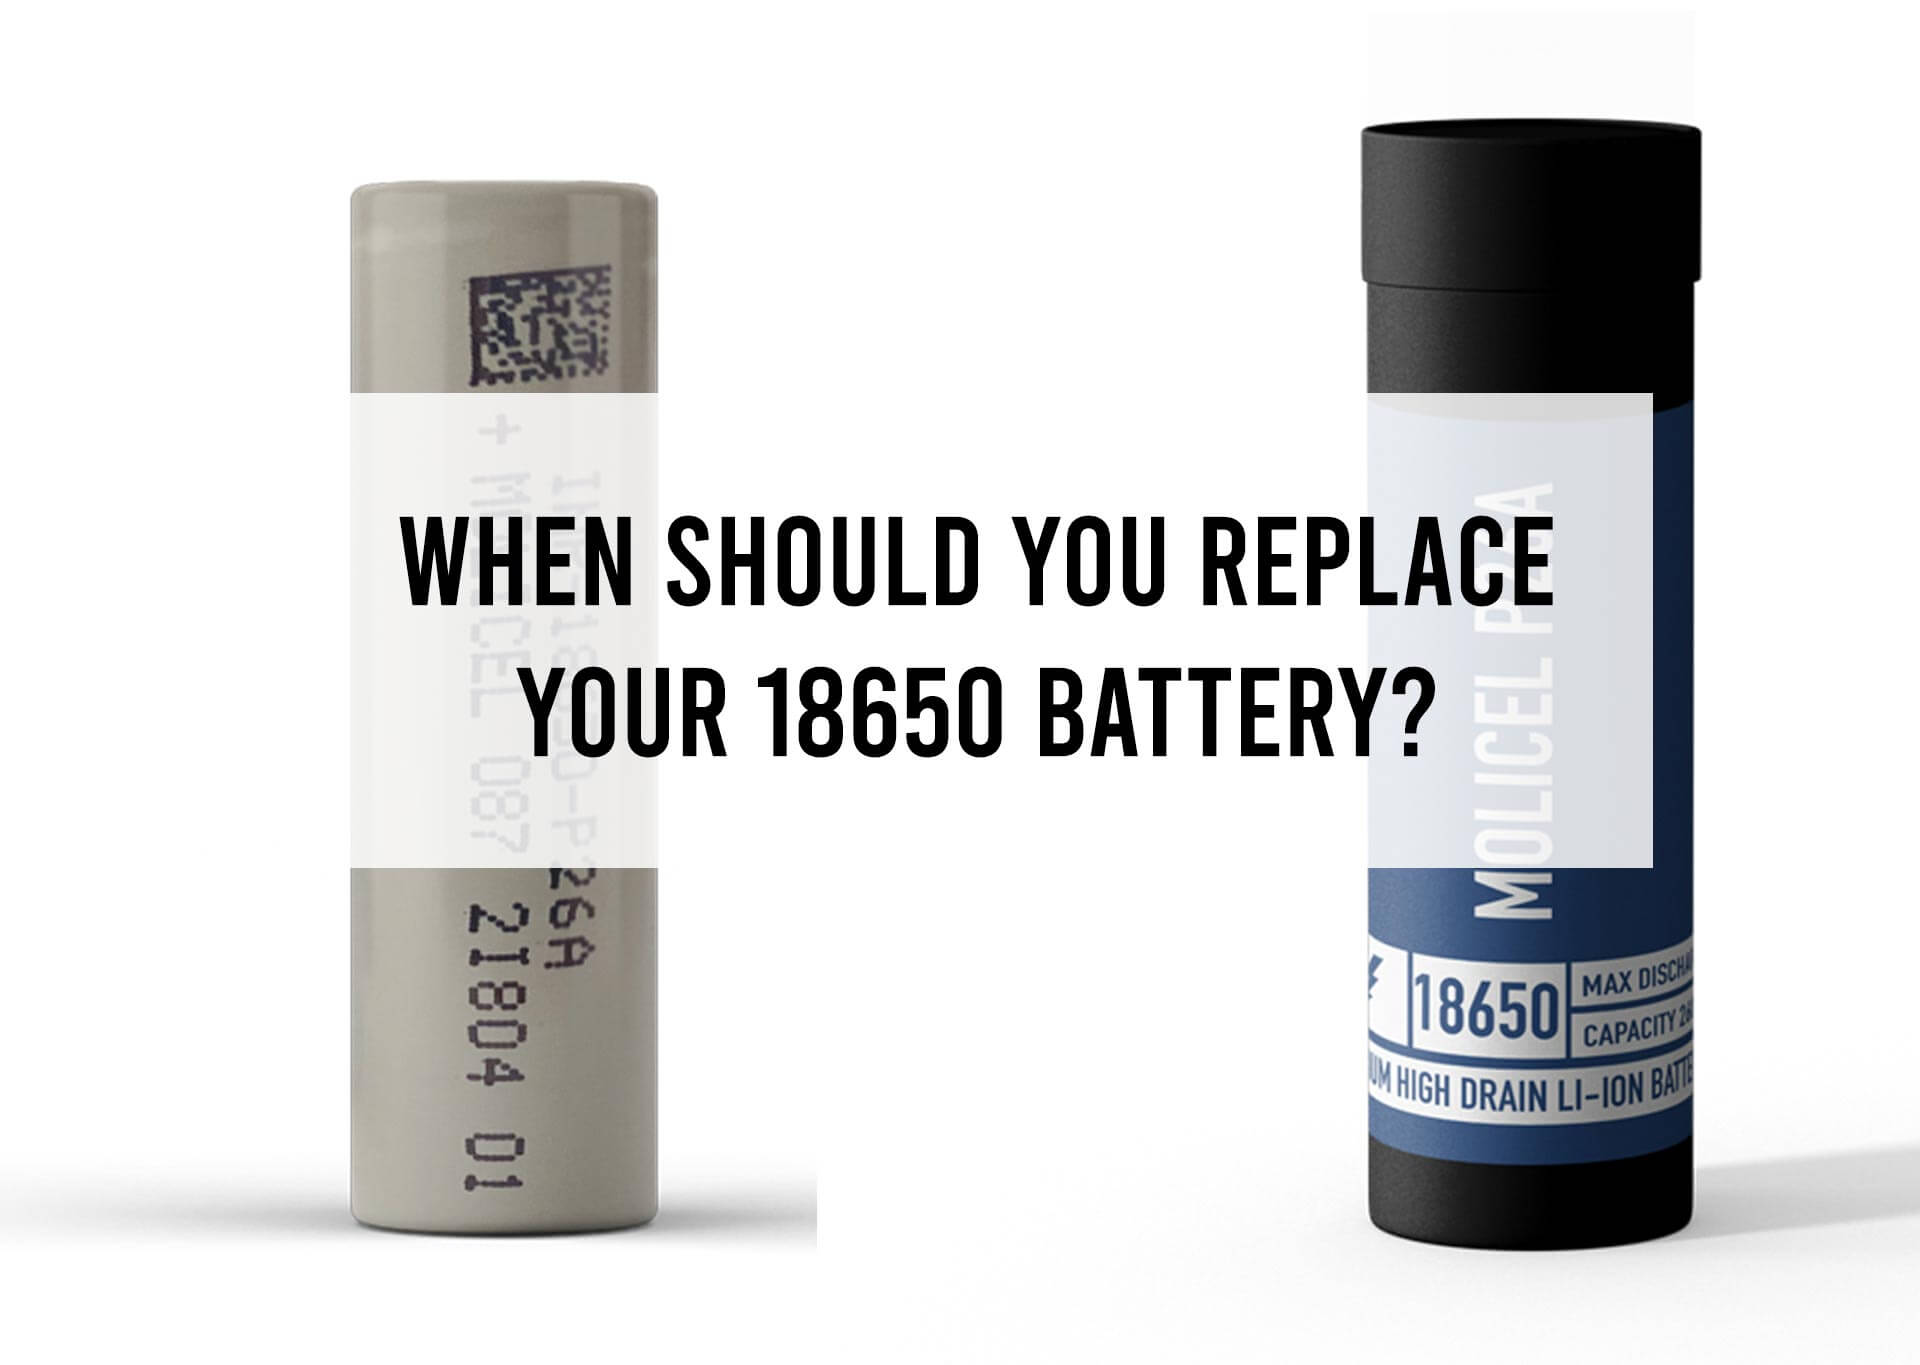 When-Should-You-Replace-Your-18650-Battery-